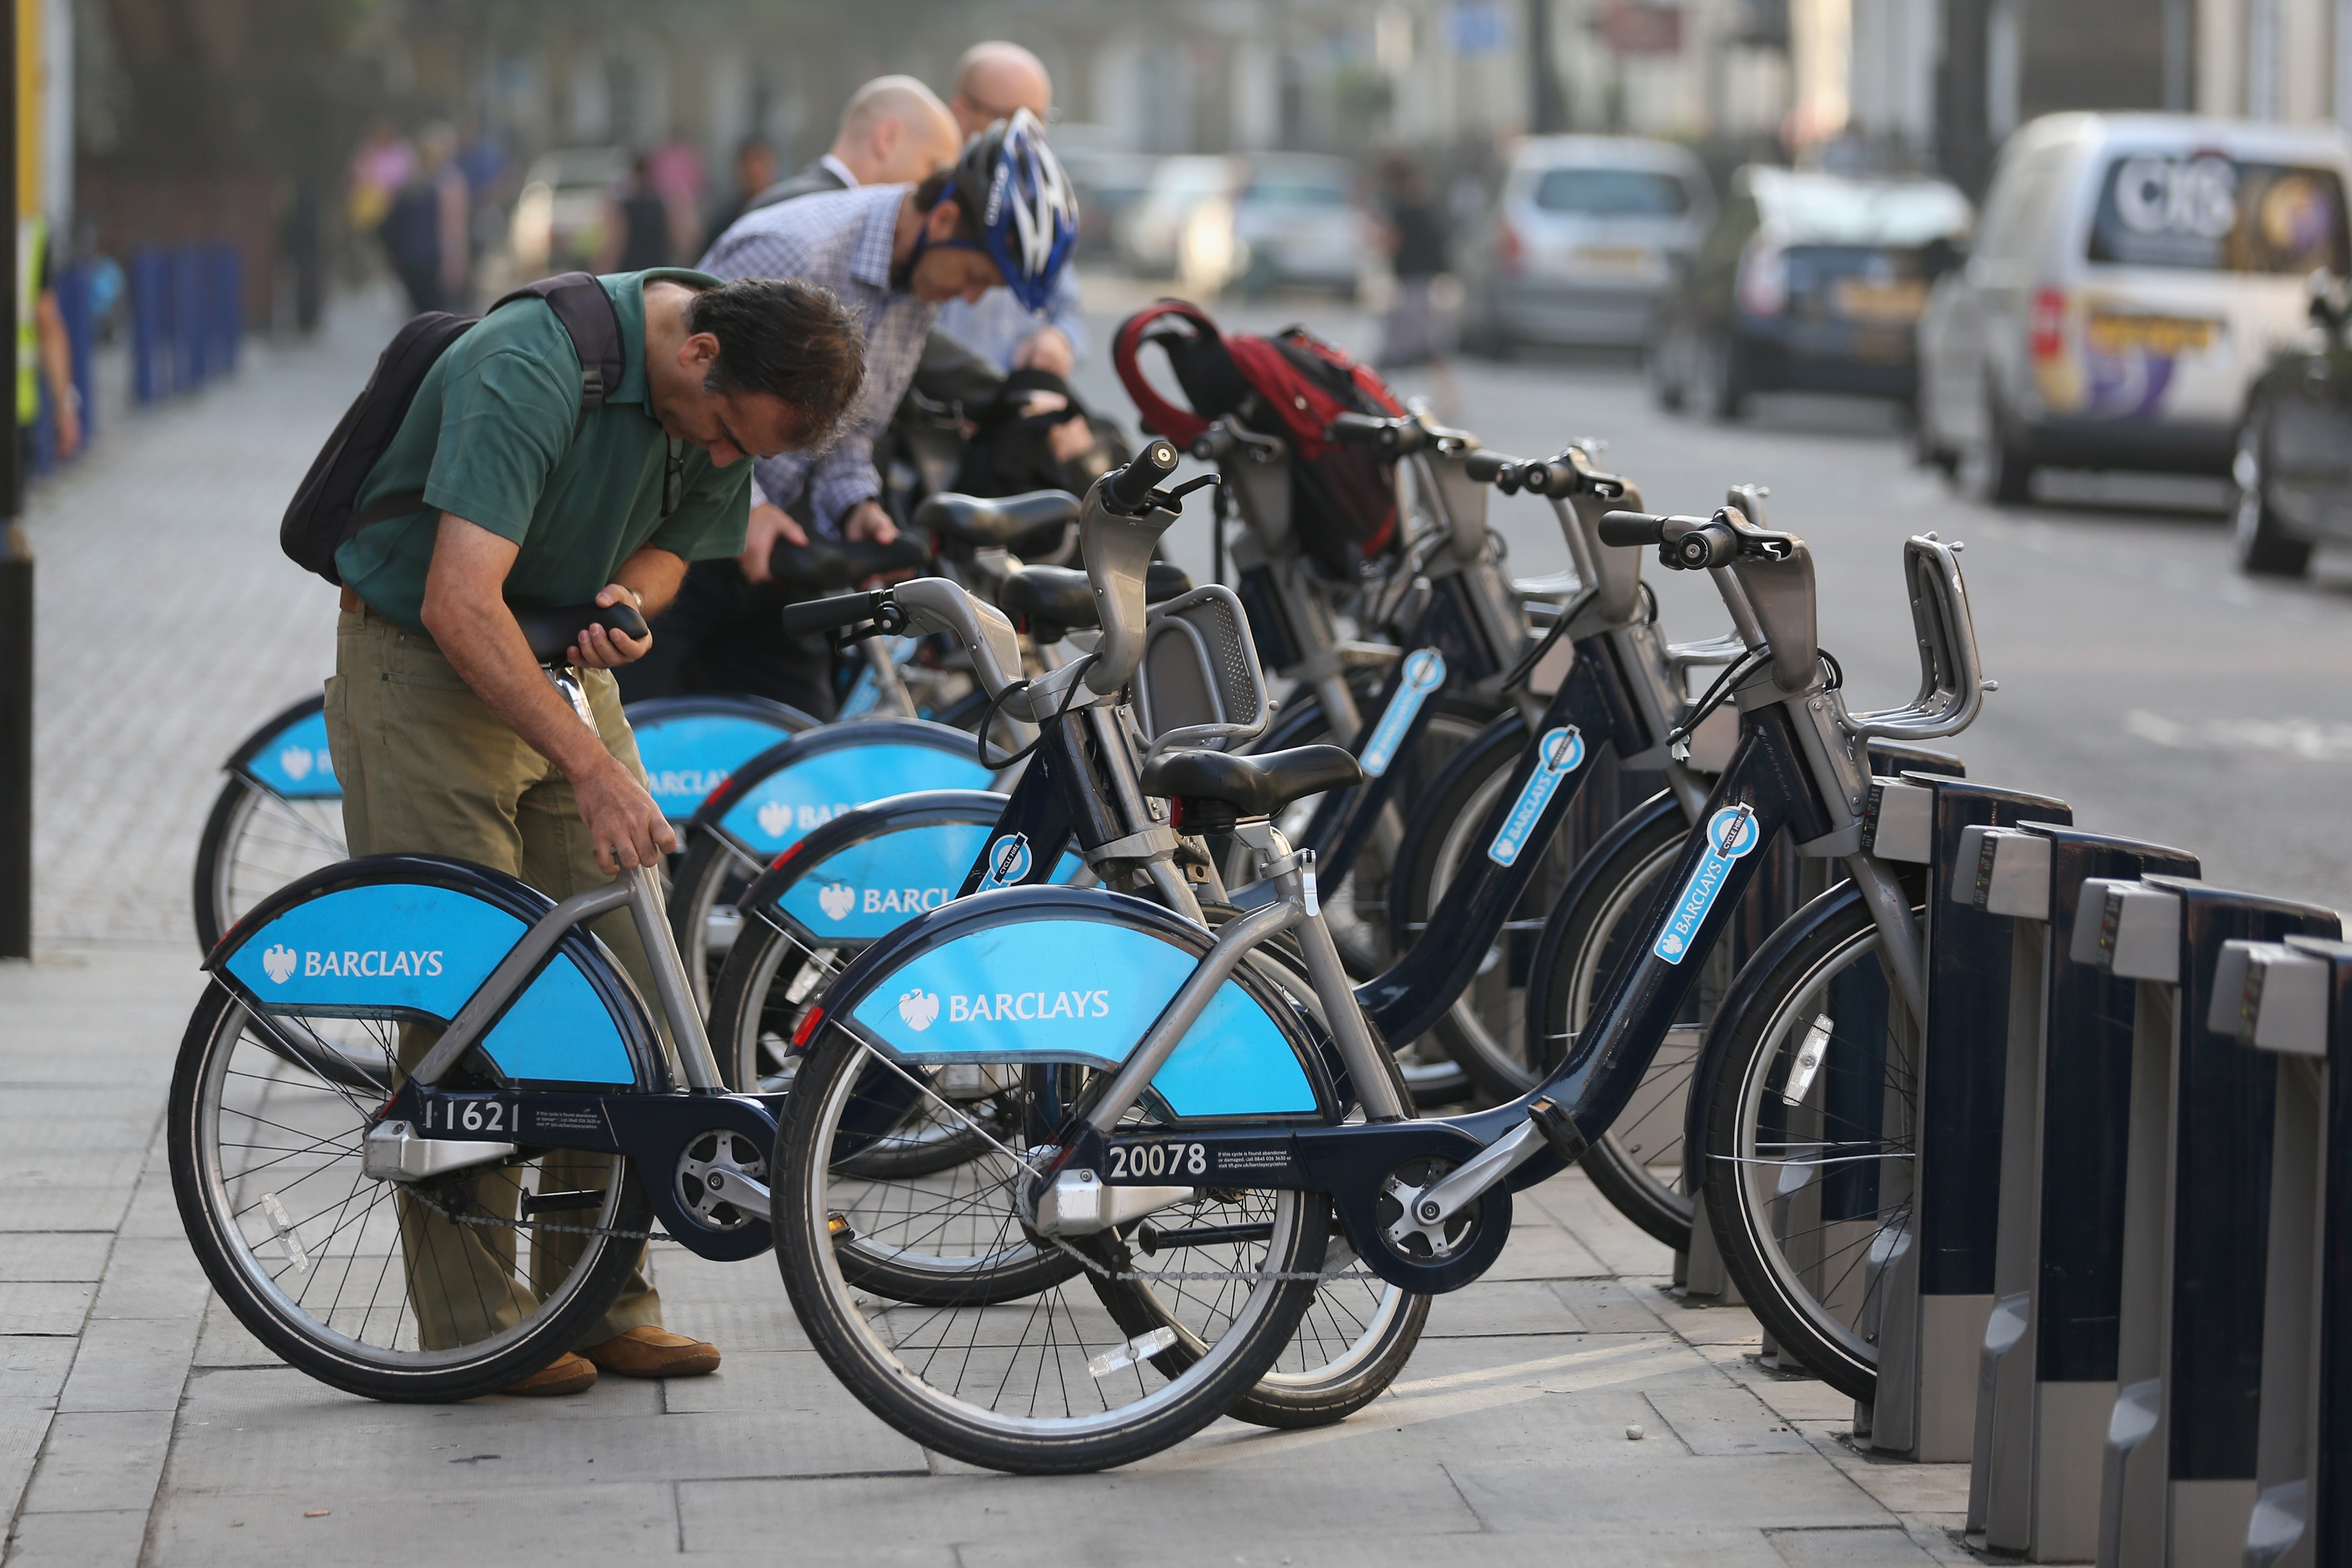 Hiring a bike is the perfect way to experience a destination up close and it's eco-friendly